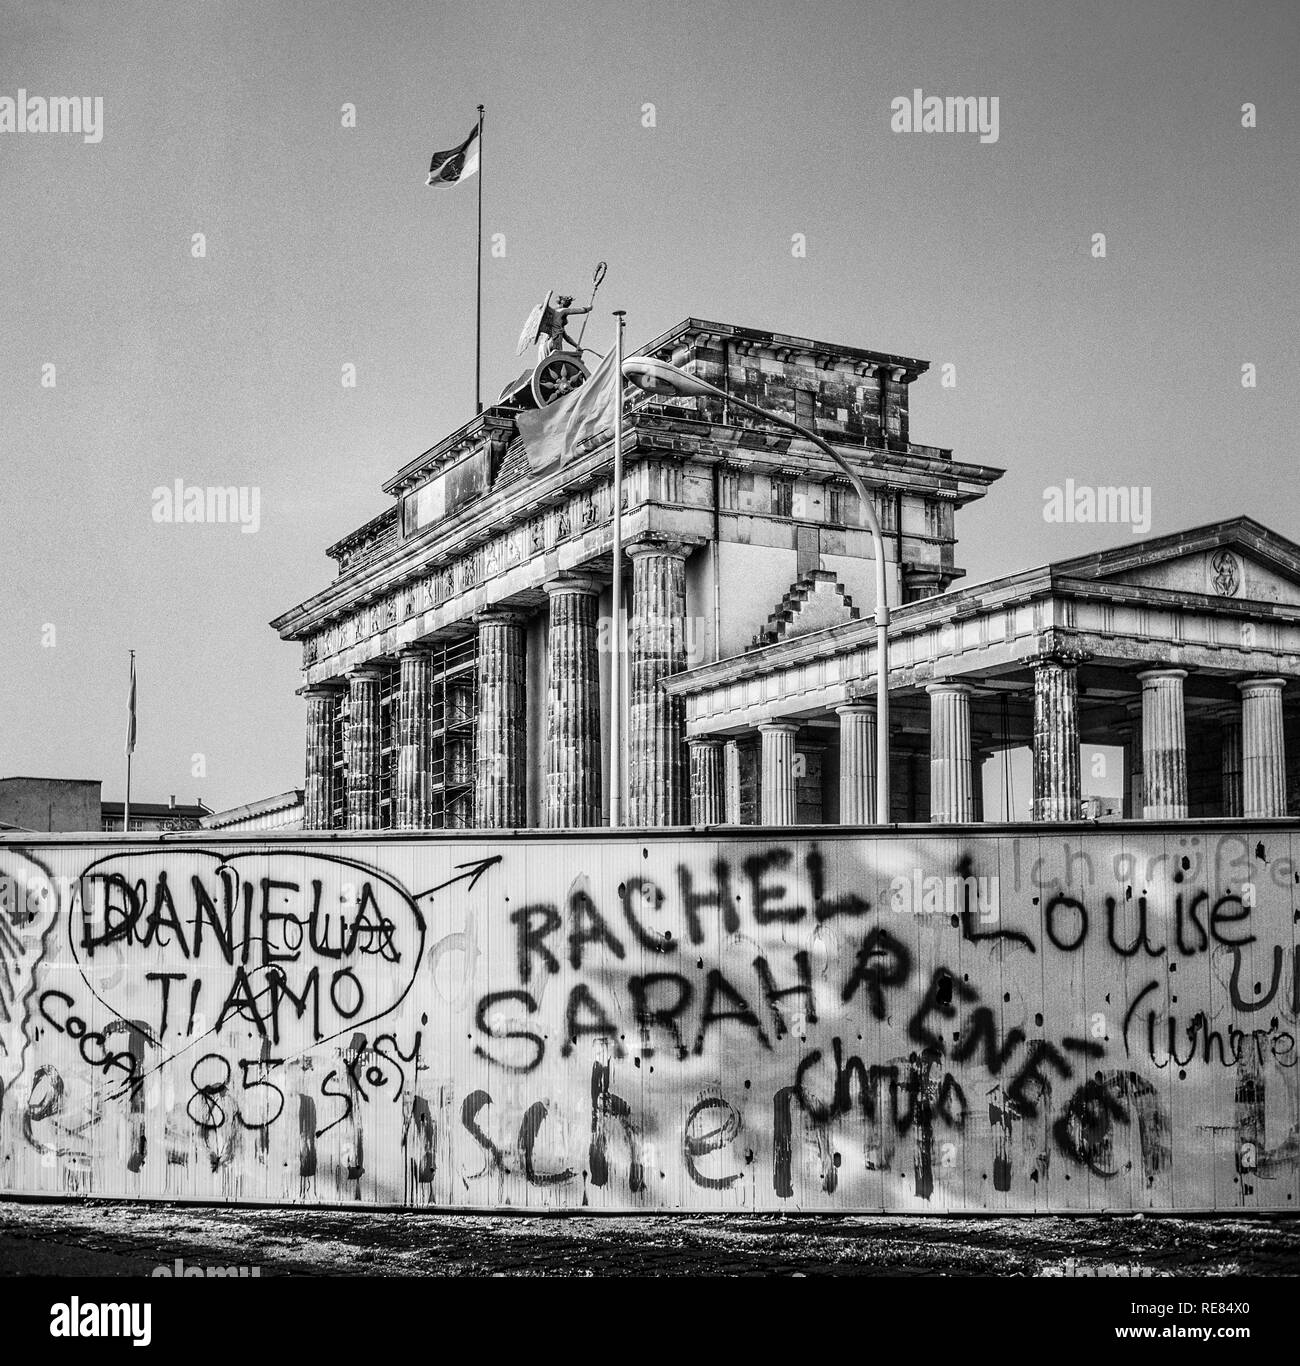 August 1986, graffitis on the Berlin Wall and Brandenburg Gate in East Berlin, West Berlin side, Germany, Europe, Stock Photo